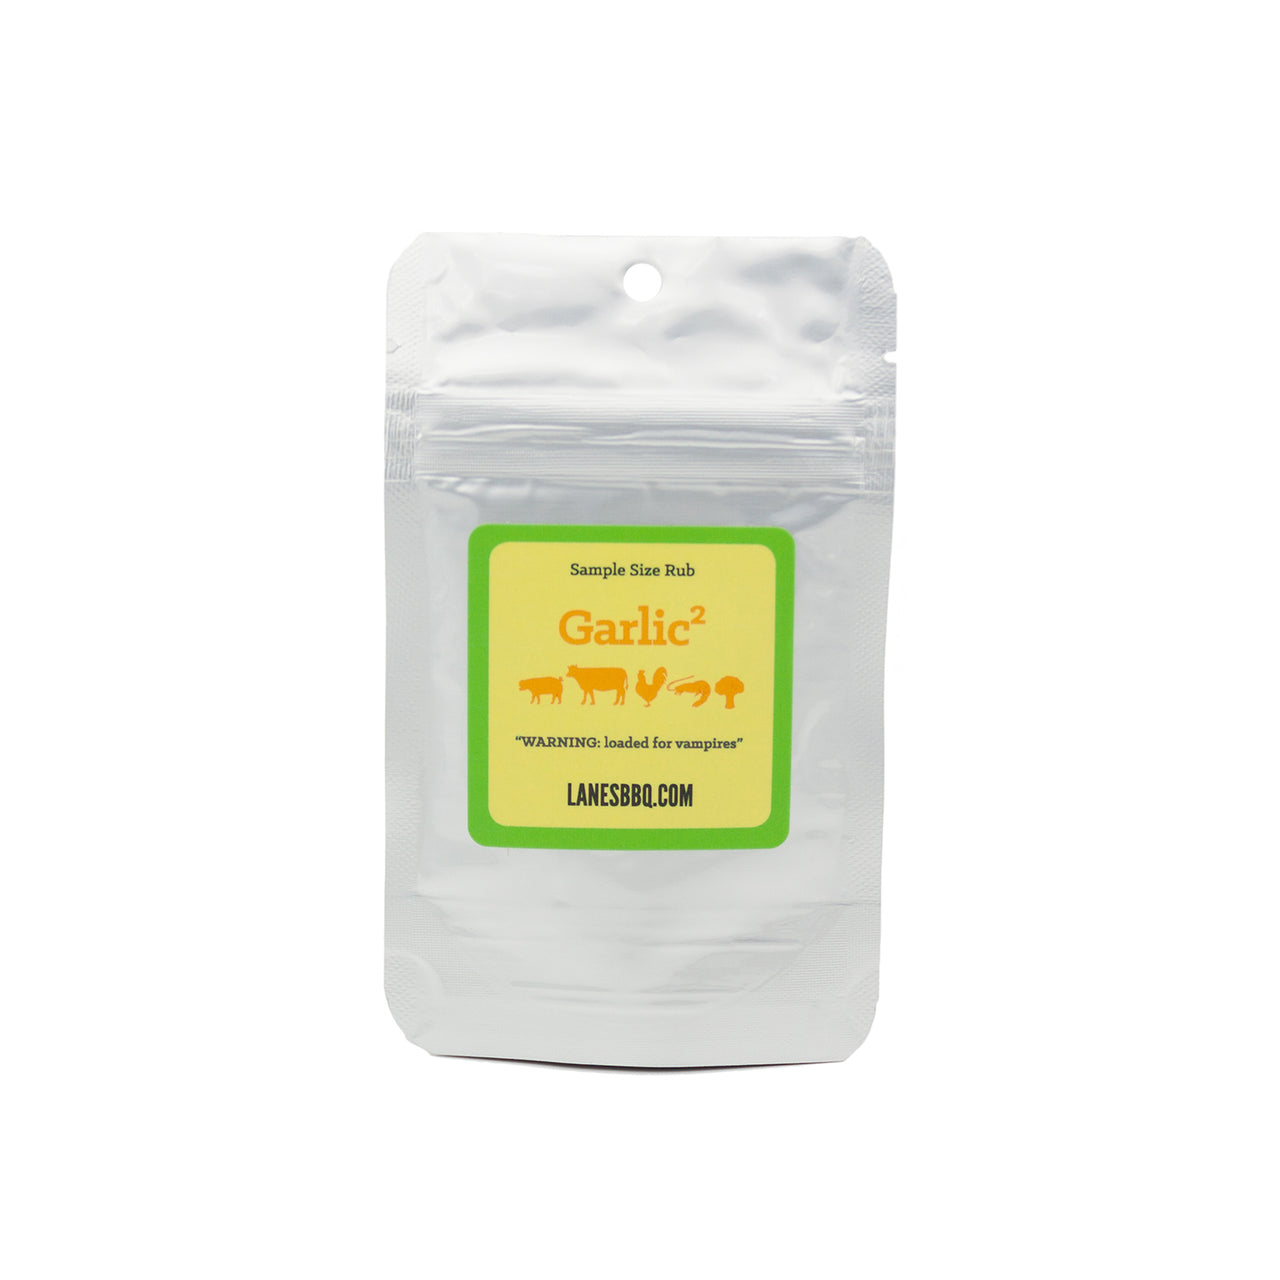 Garlic² Rub - .50 oz Sample Bag